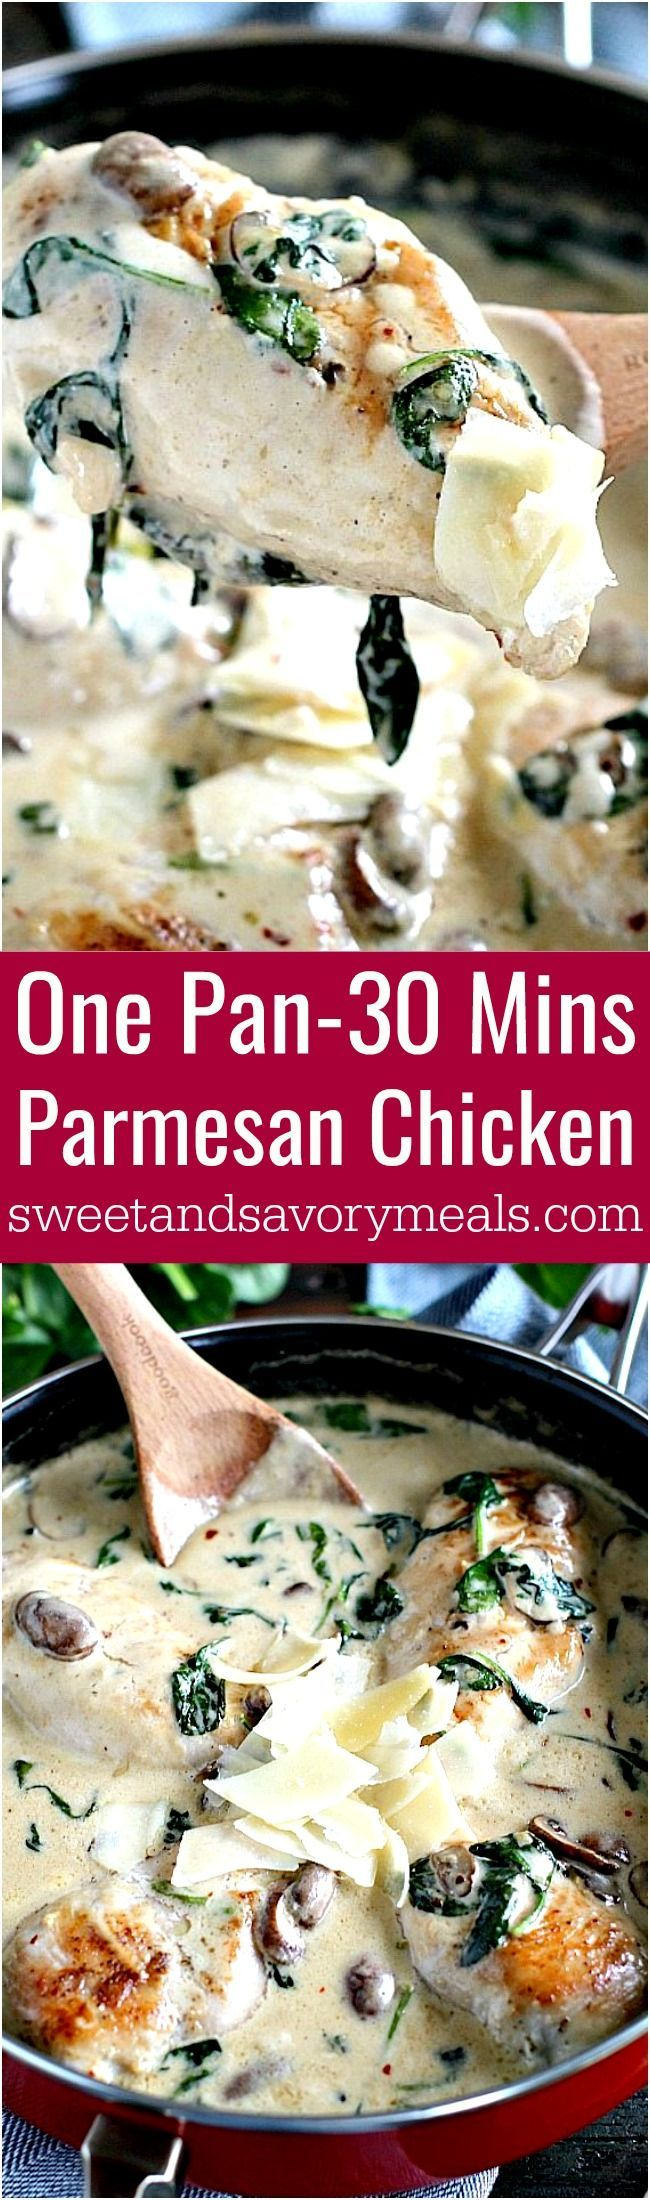 Creamy Parmesan Mushroom Chicken is made easy in One Pan and is ready in 30 minutes. Made with cheese, wine and garlic, it packs lots of flavor. #chicken #onepan #30minute #creamy #dinner